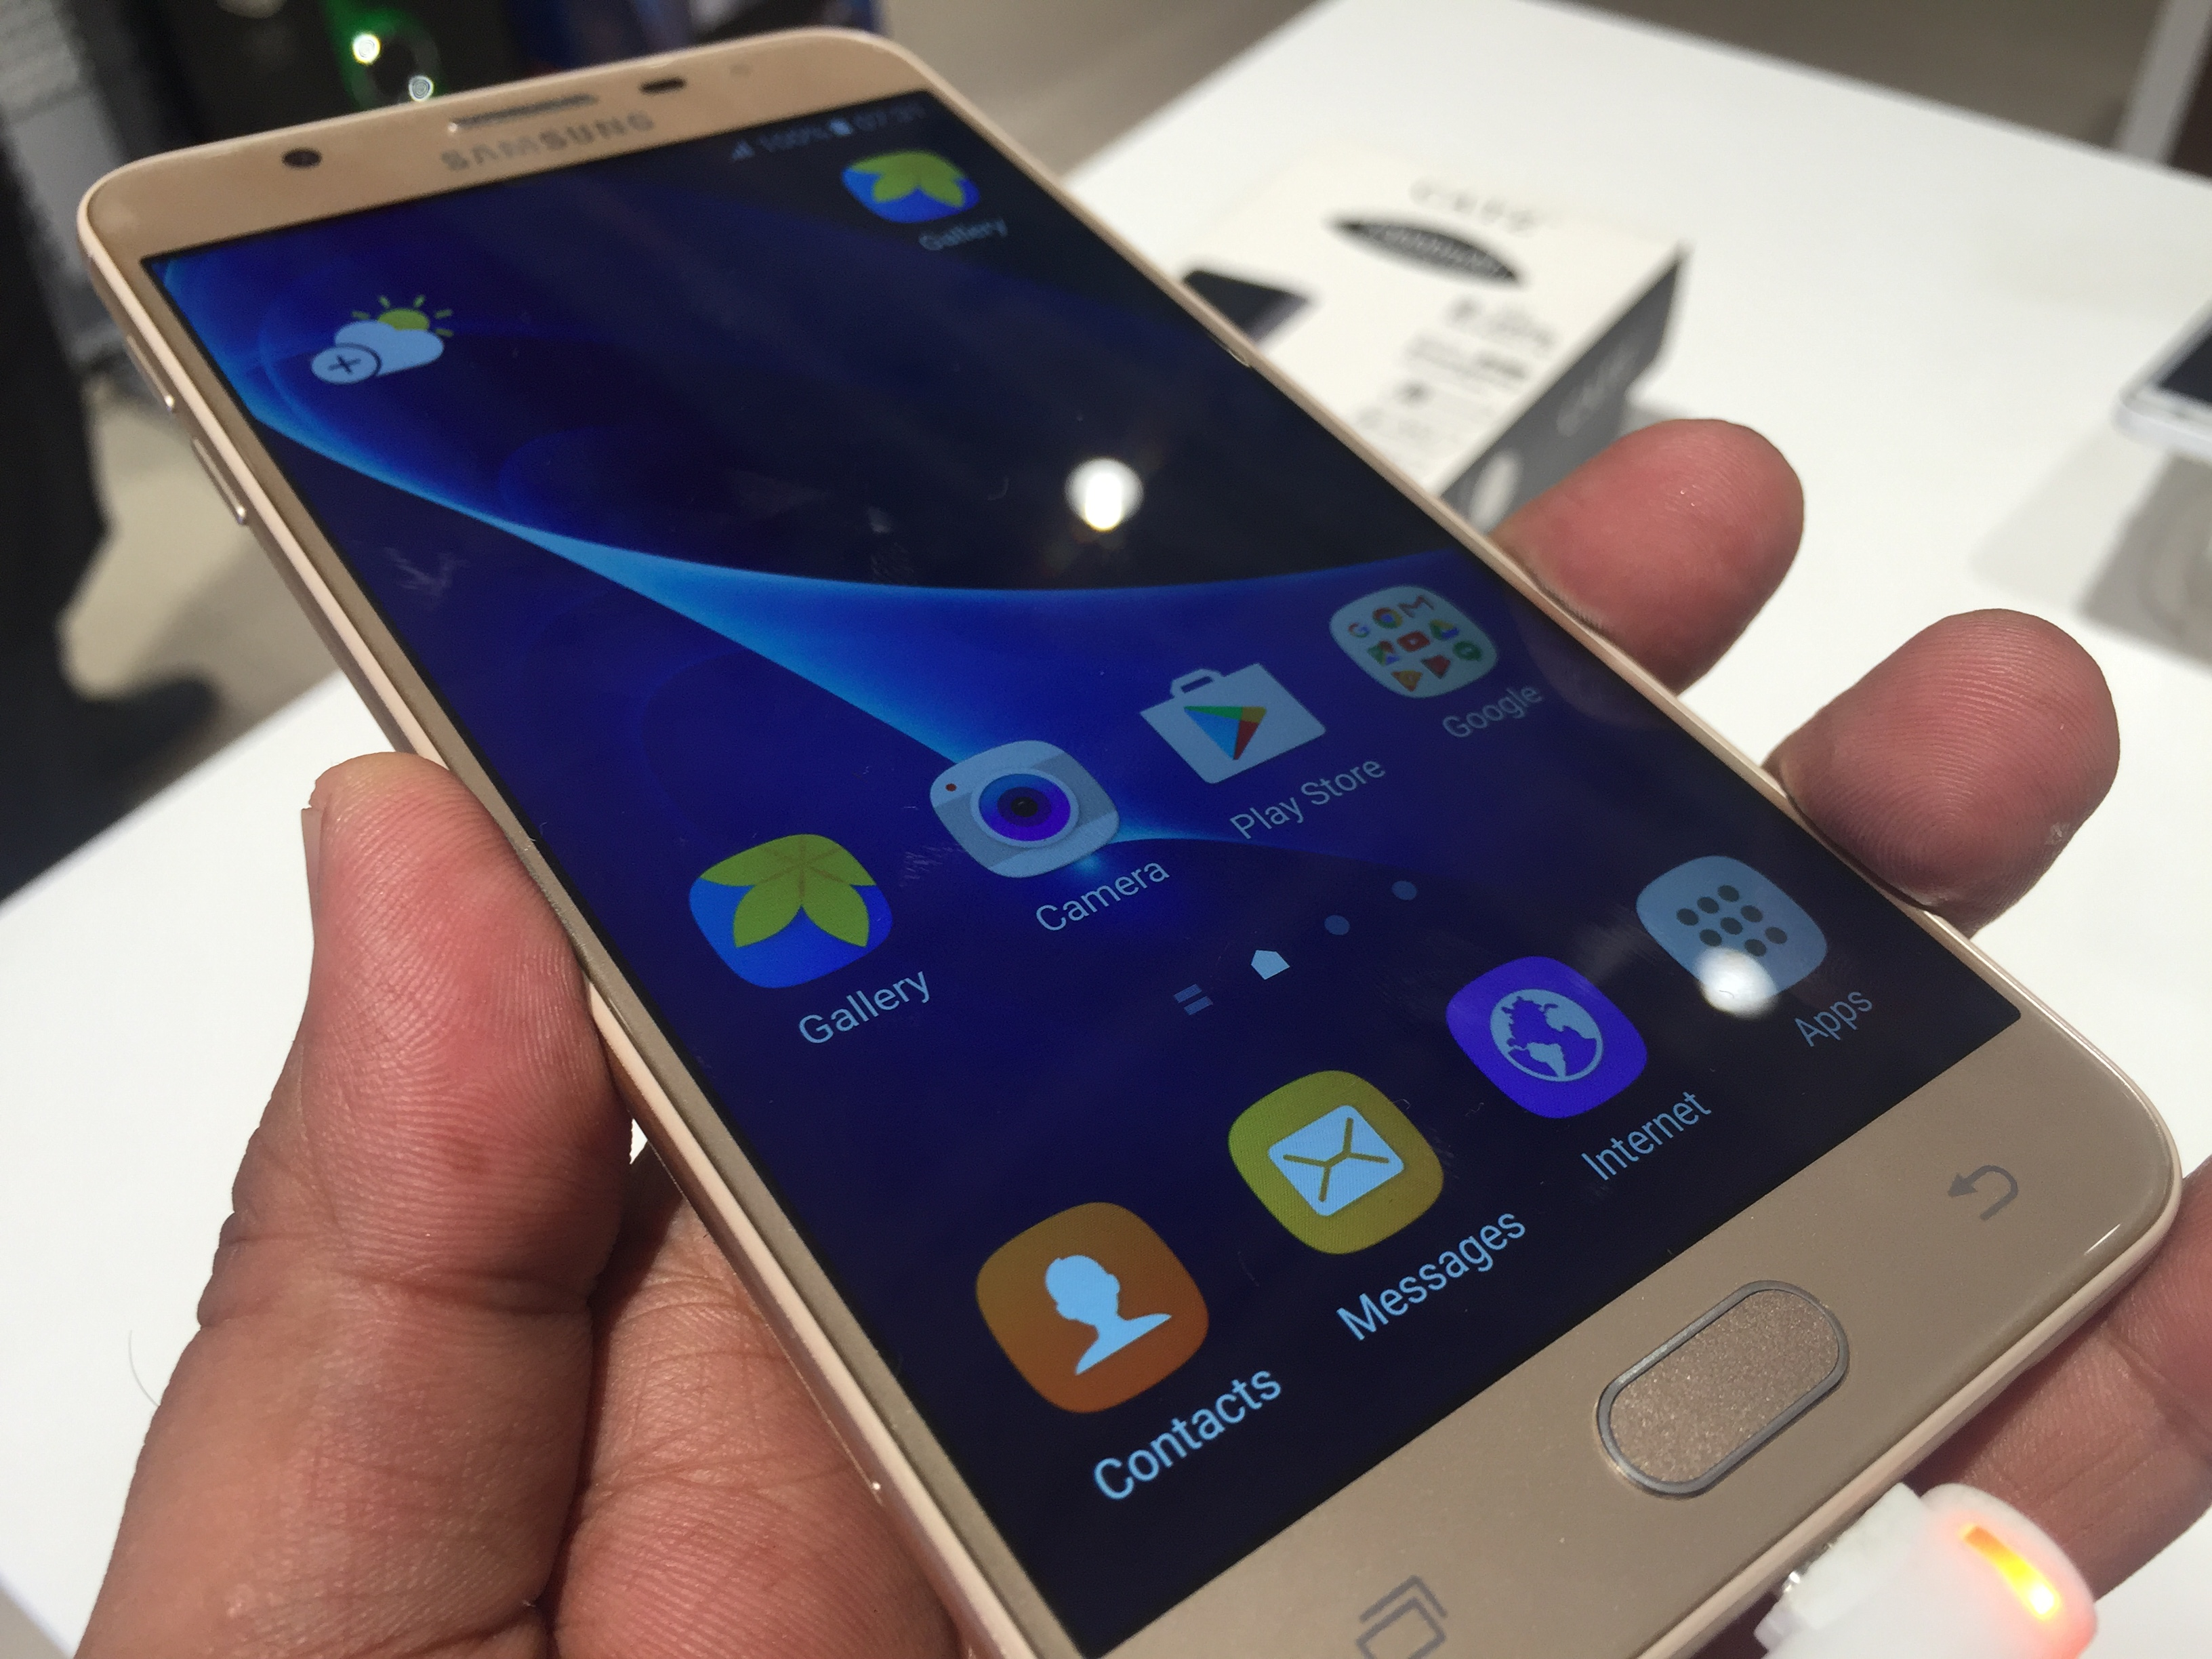 samsung galaxy j7 prime hands on overview with video